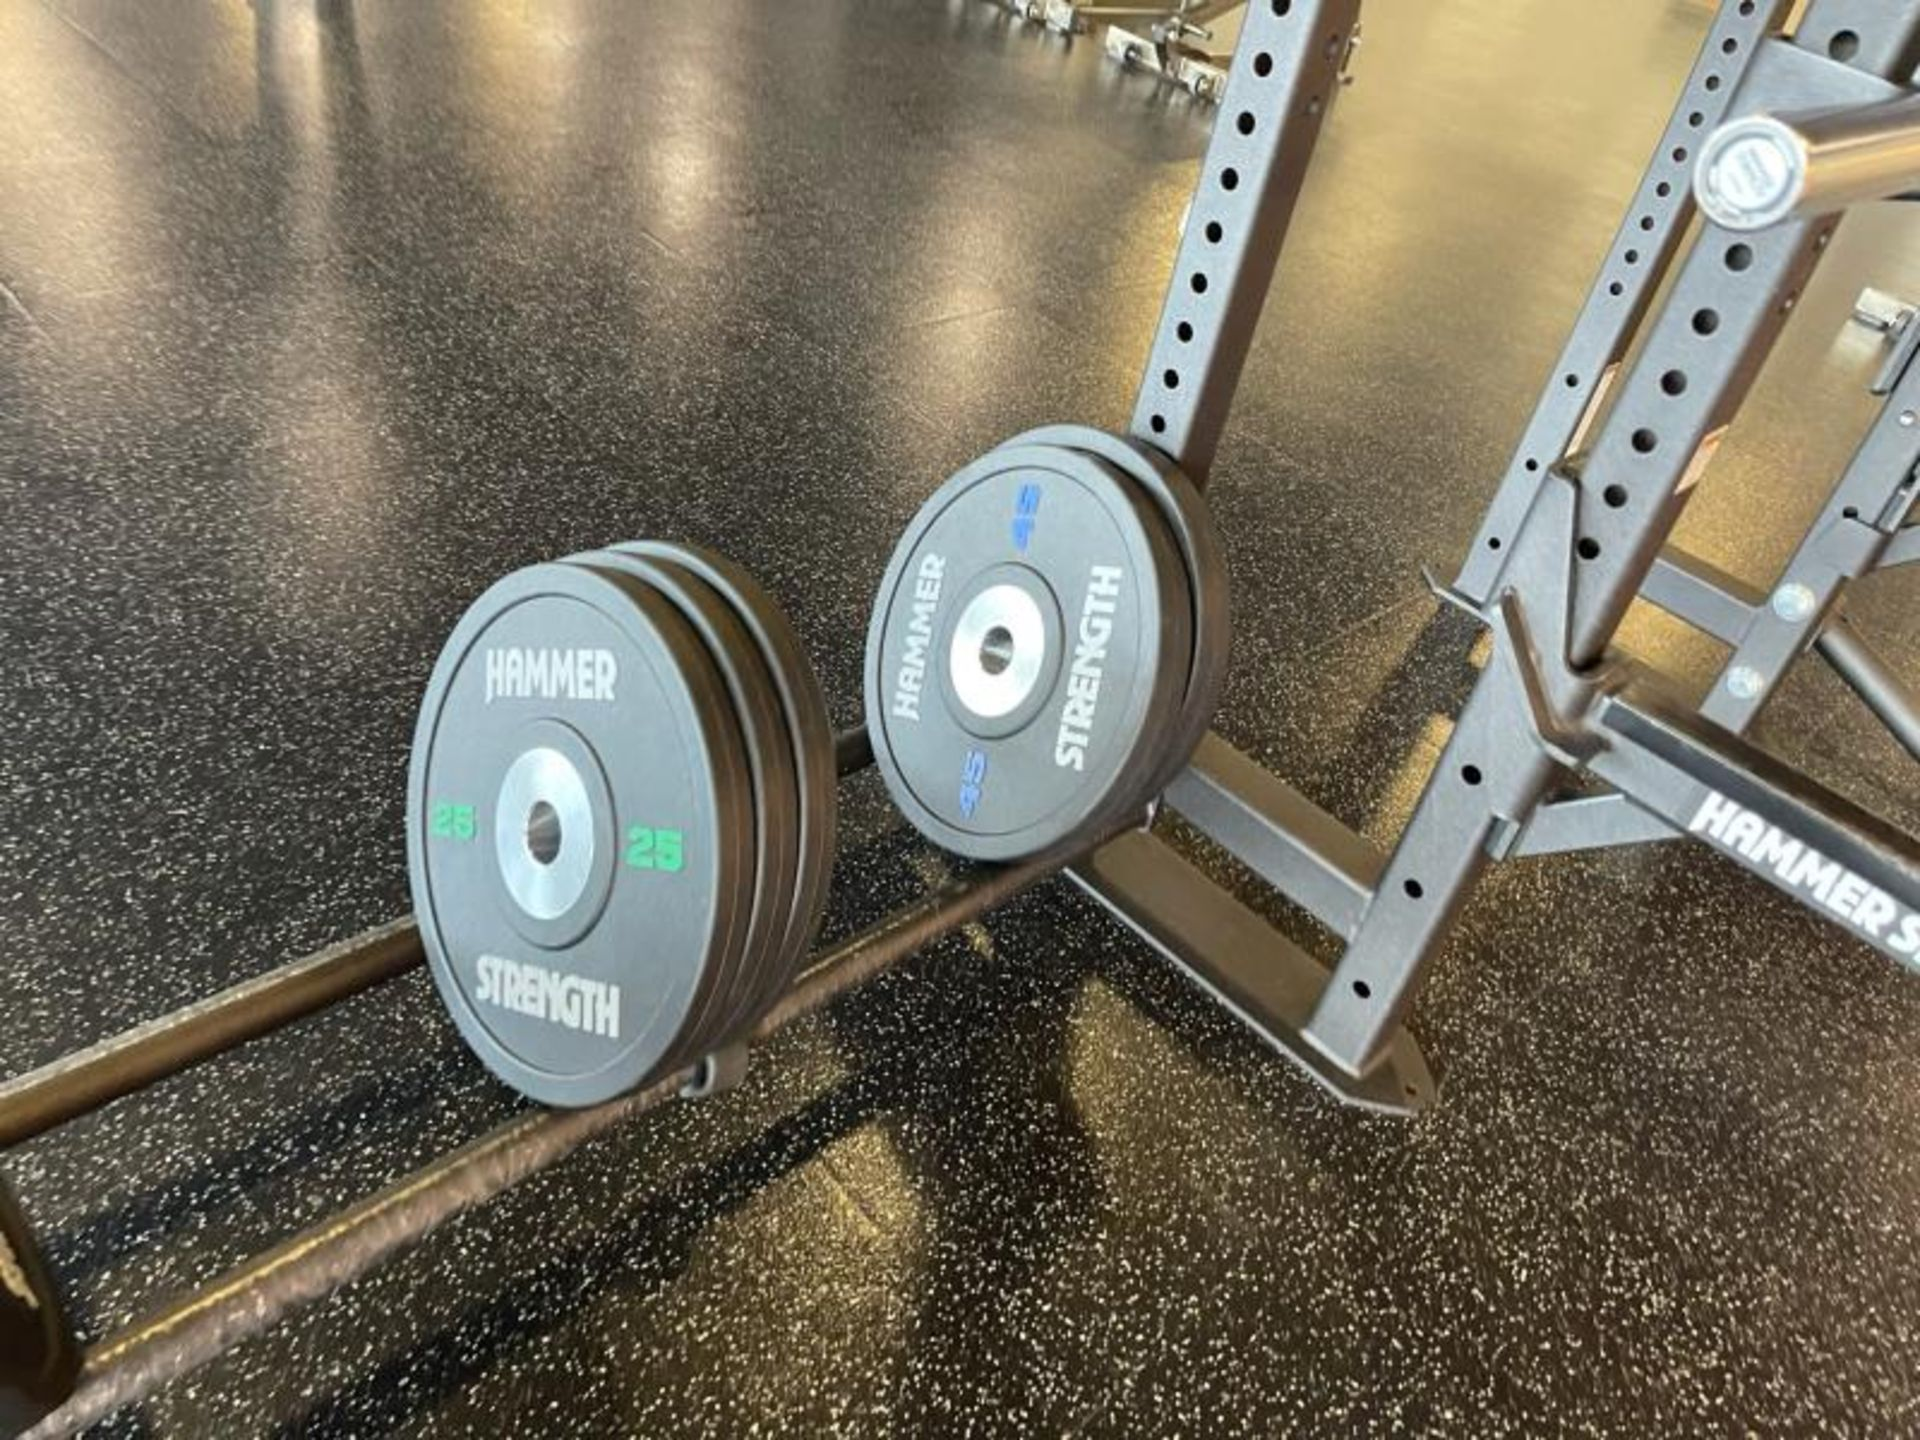 Hammer Strength Multi Station Cage with Hammer Strength Weighted Plates, 4 Bars - Image 8 of 11